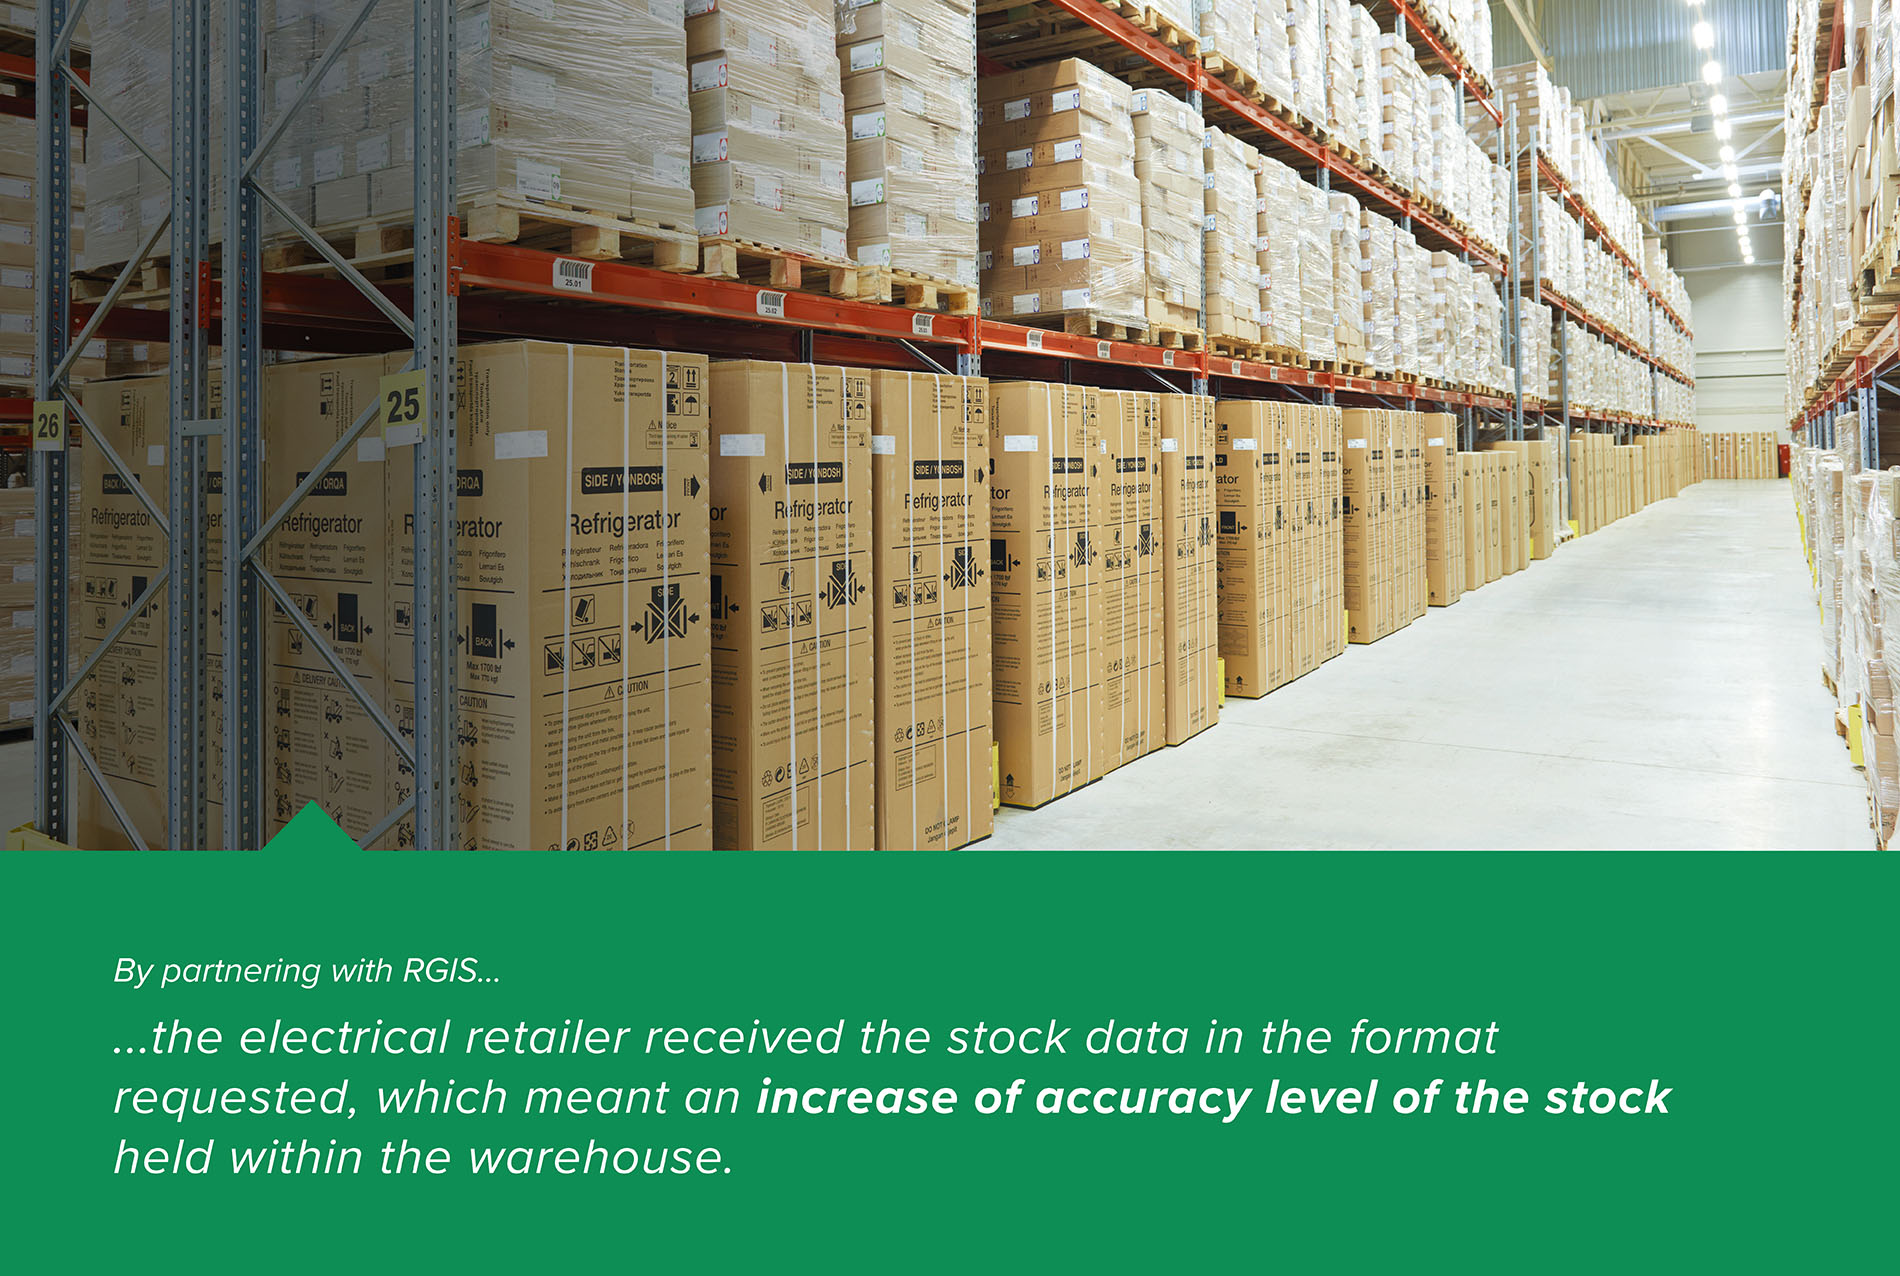 Electrical Retailer Warehouse Wall-to-Wall Count Case Study